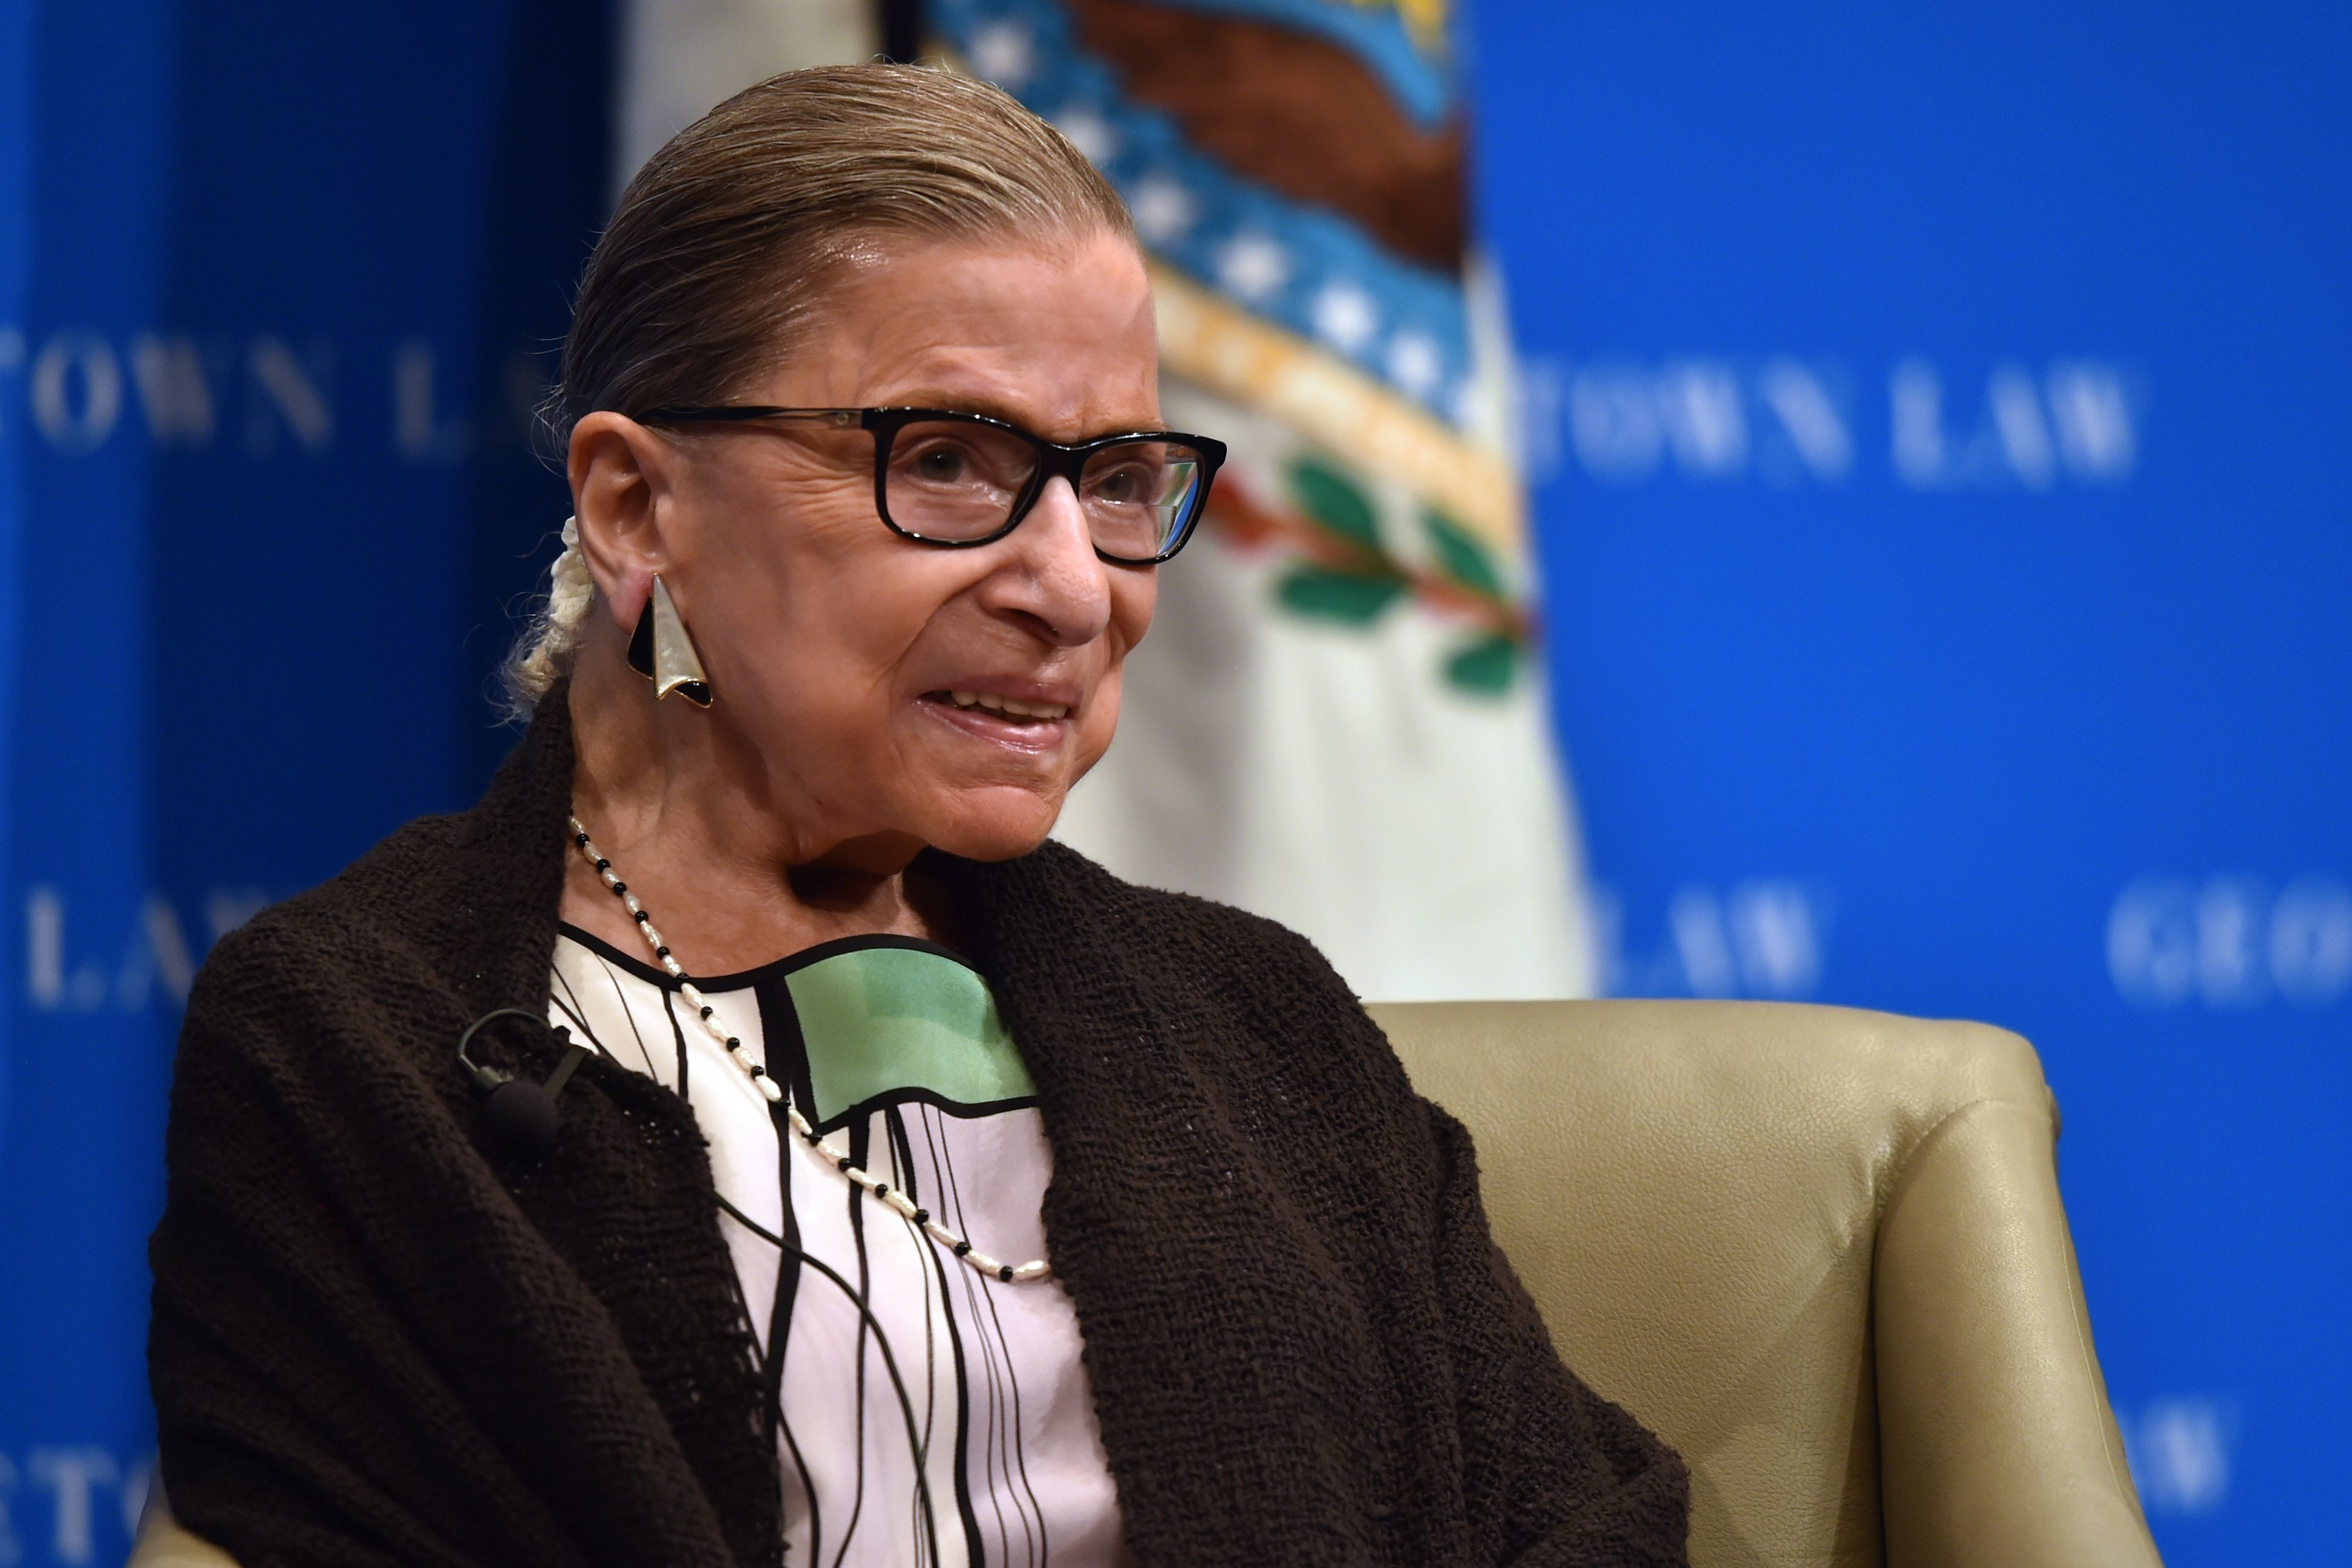 Associate Justice of the Supreme Court Ruth Bader Ginsburg gestures as she speaks to Georgetown University law students in Washington, DC on September 20, 2017.  / AFP PHOTO / Nicholas Kamm        (Photo credit should read NICHOLAS KAMM/AFP/Getty Images)